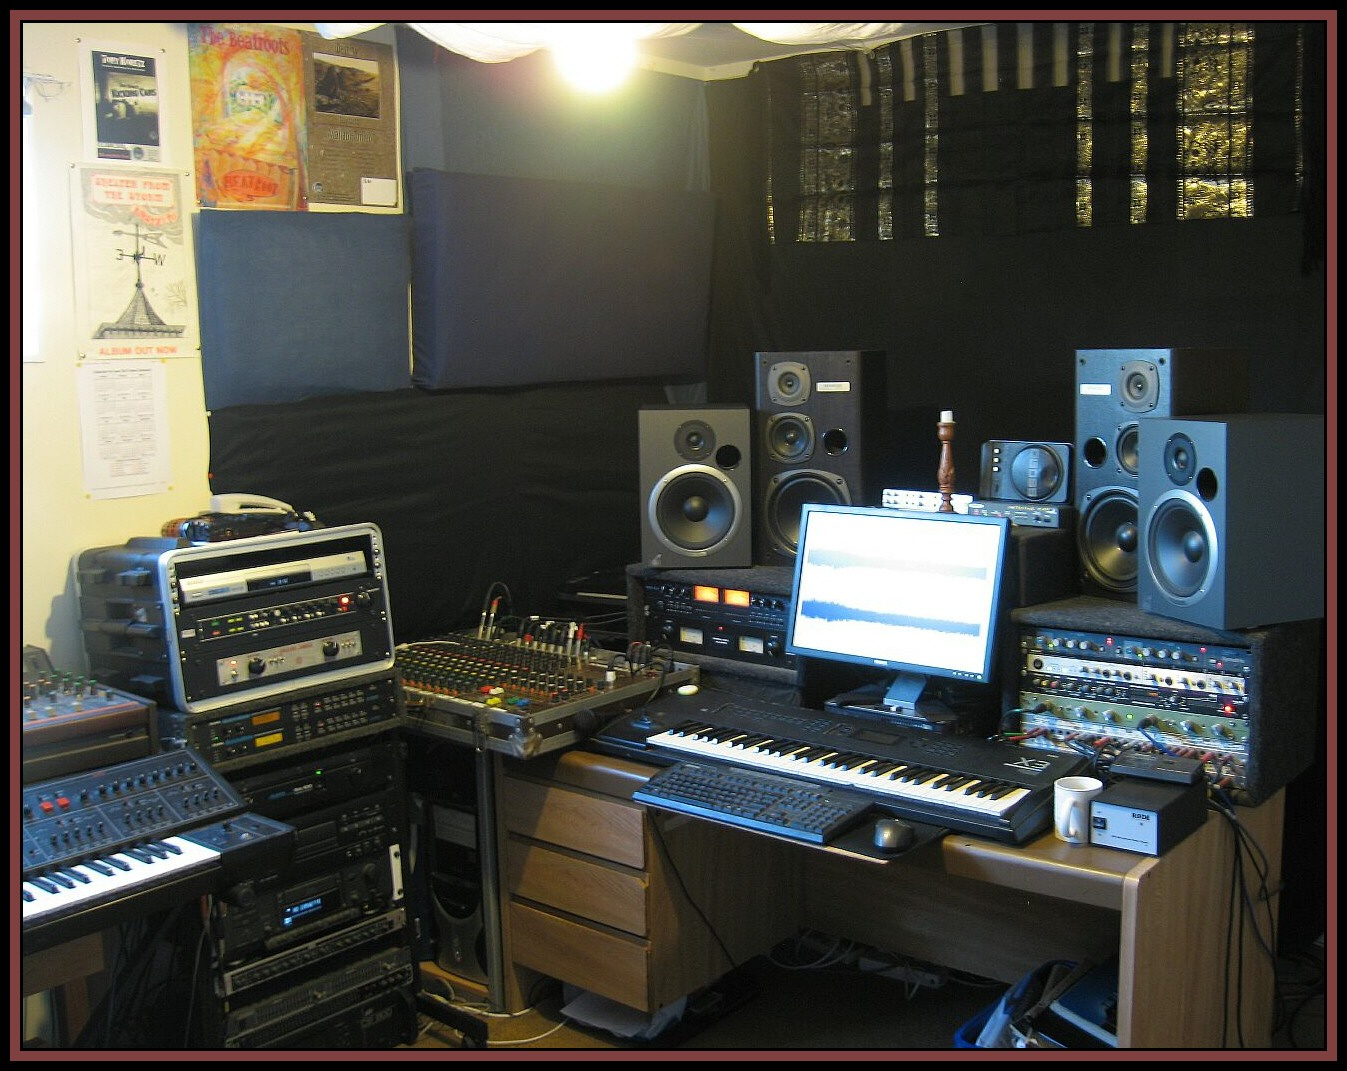 The studio control room